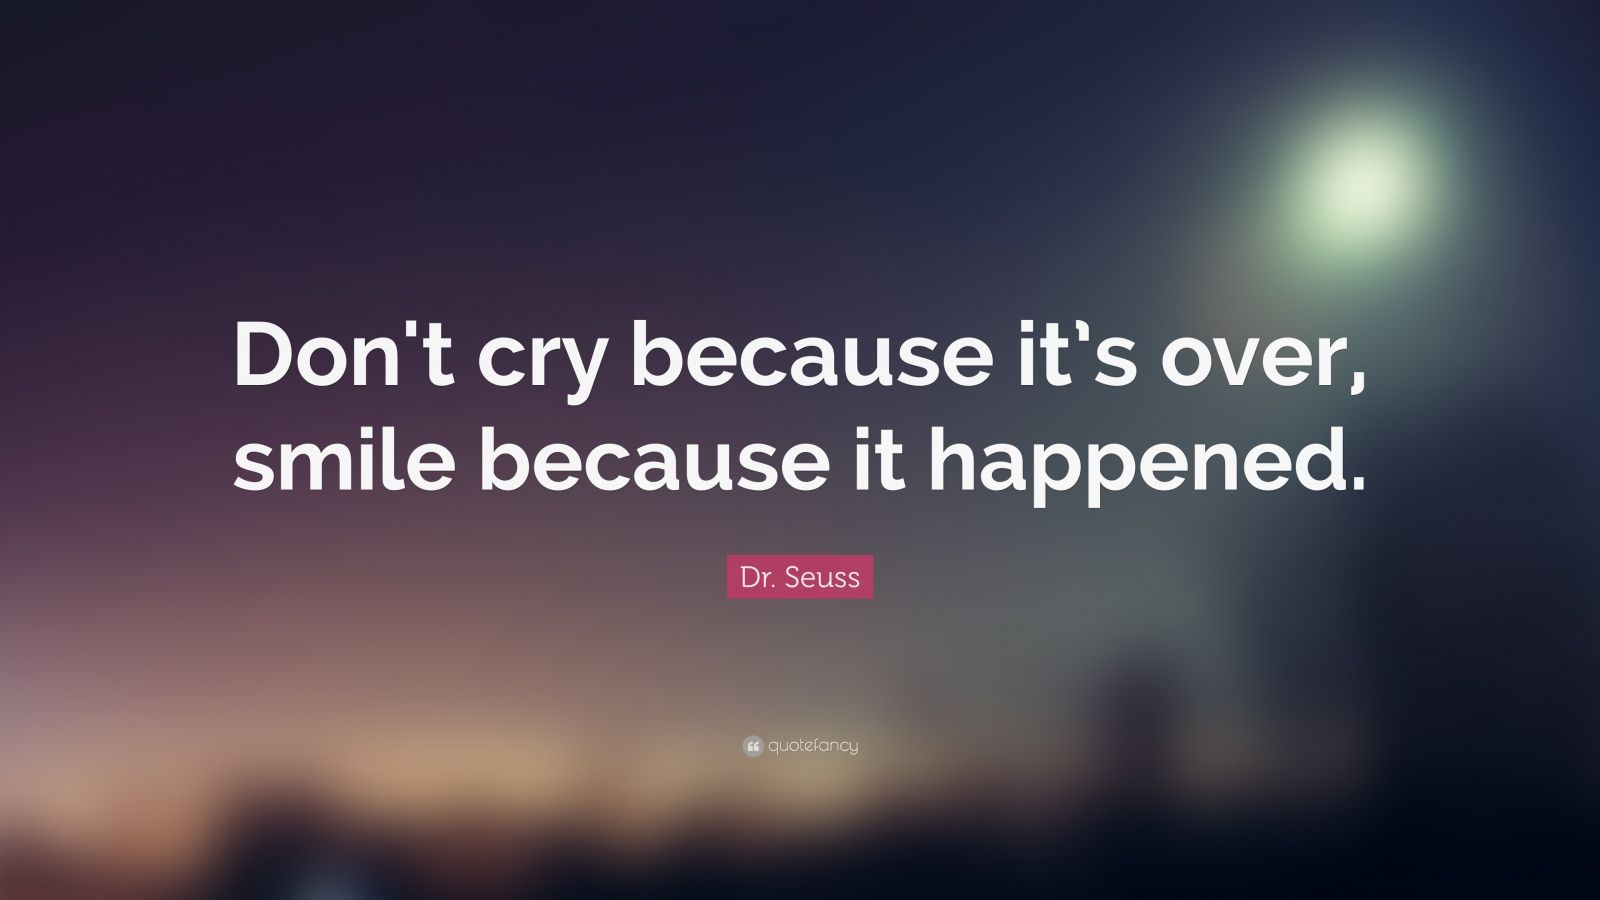 Dr Seuss Quote Iphone Wallpaper Dr Seuss Quote Don T Cry Because It S Over Smile